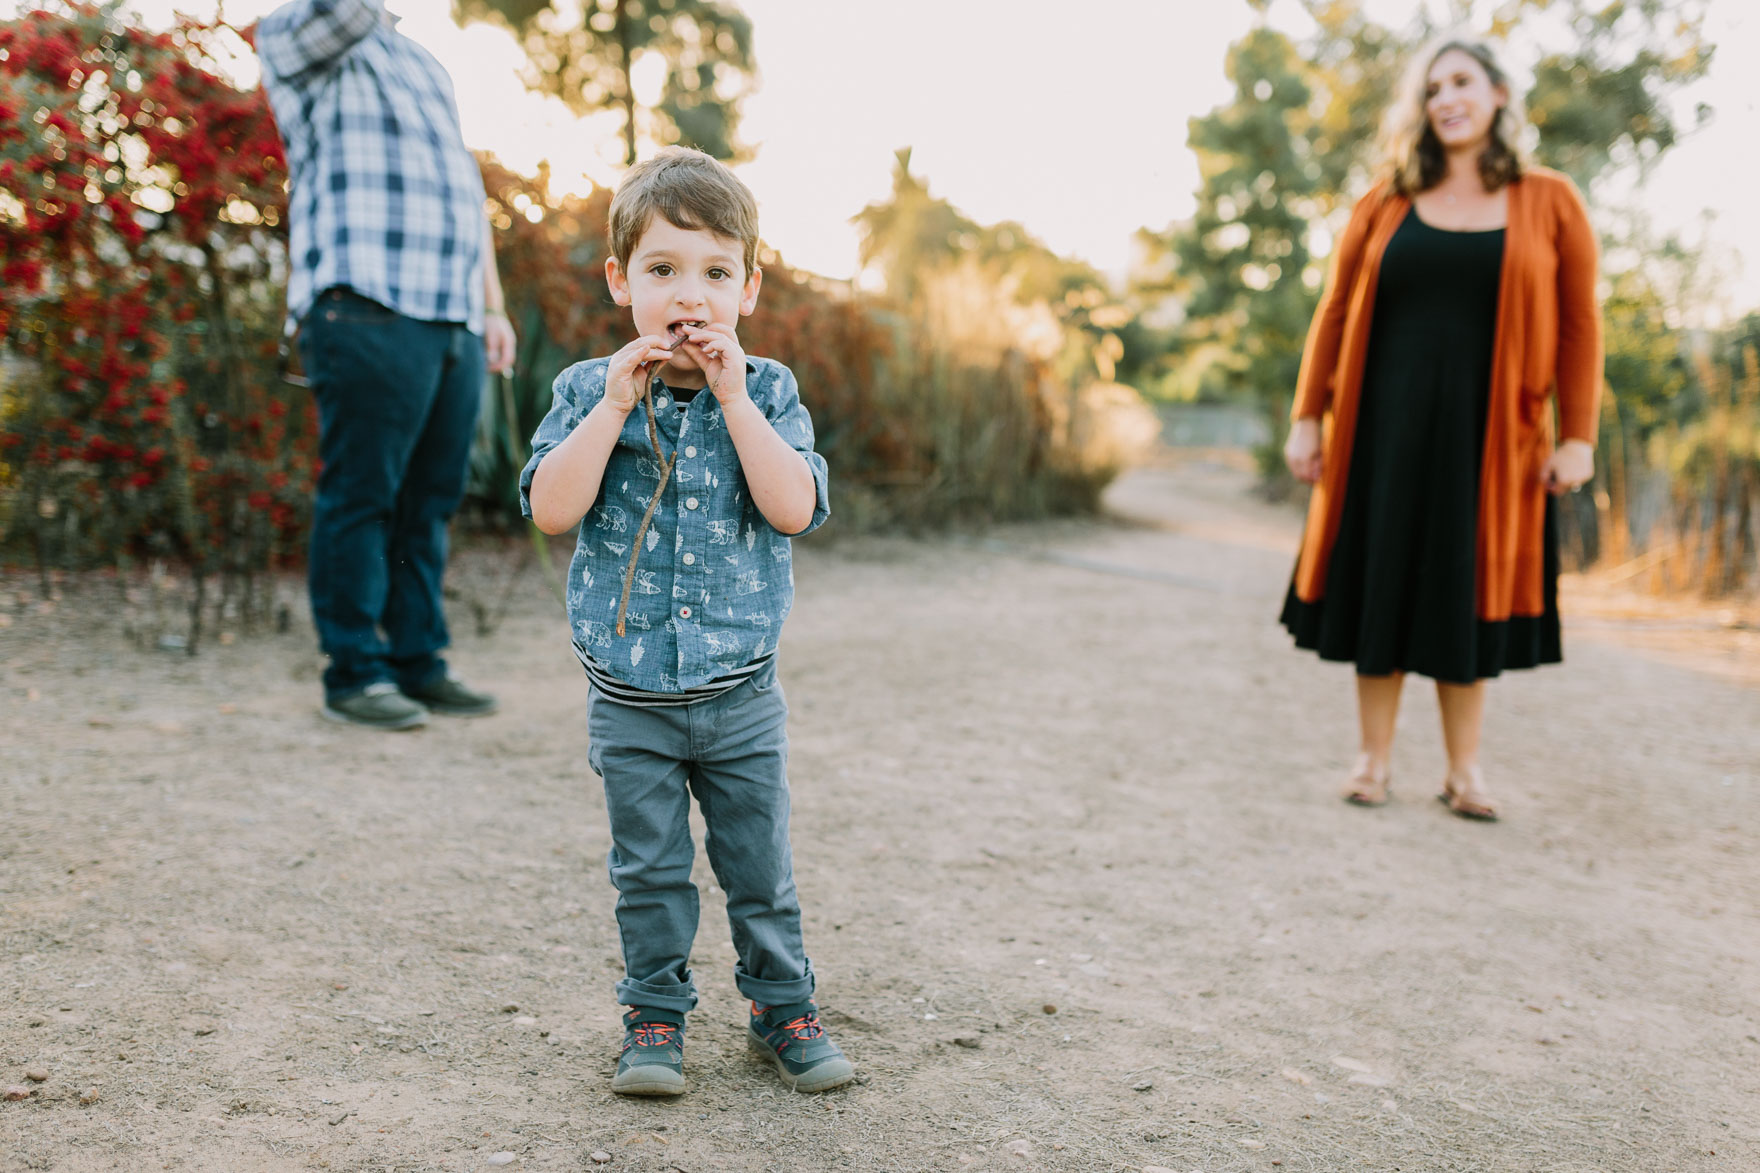 Family Nature Walk in the Park – Photo by Let's Frolic Together